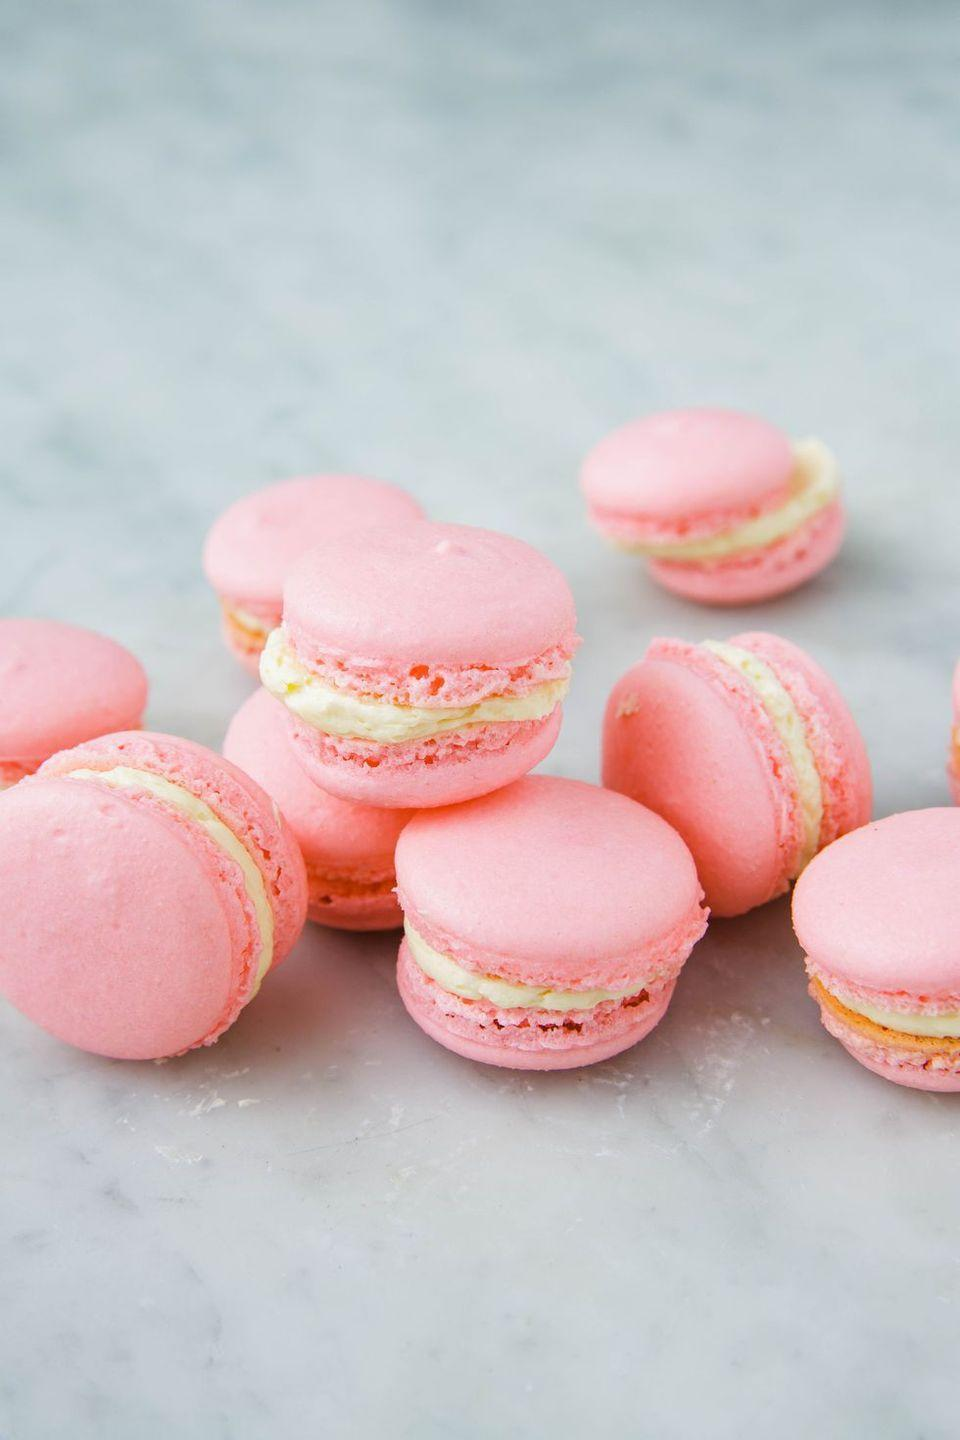 """<p>These delicate French cookies are SO classy. </p><p>Get the recipe from <a href=""""https://www.delish.com/cooking/recipe-ideas/a25324082/how-to-make-macarons/"""" rel=""""nofollow noopener"""" target=""""_blank"""" data-ylk=""""slk:Delish"""" class=""""link rapid-noclick-resp"""">Delish</a>. </p>"""